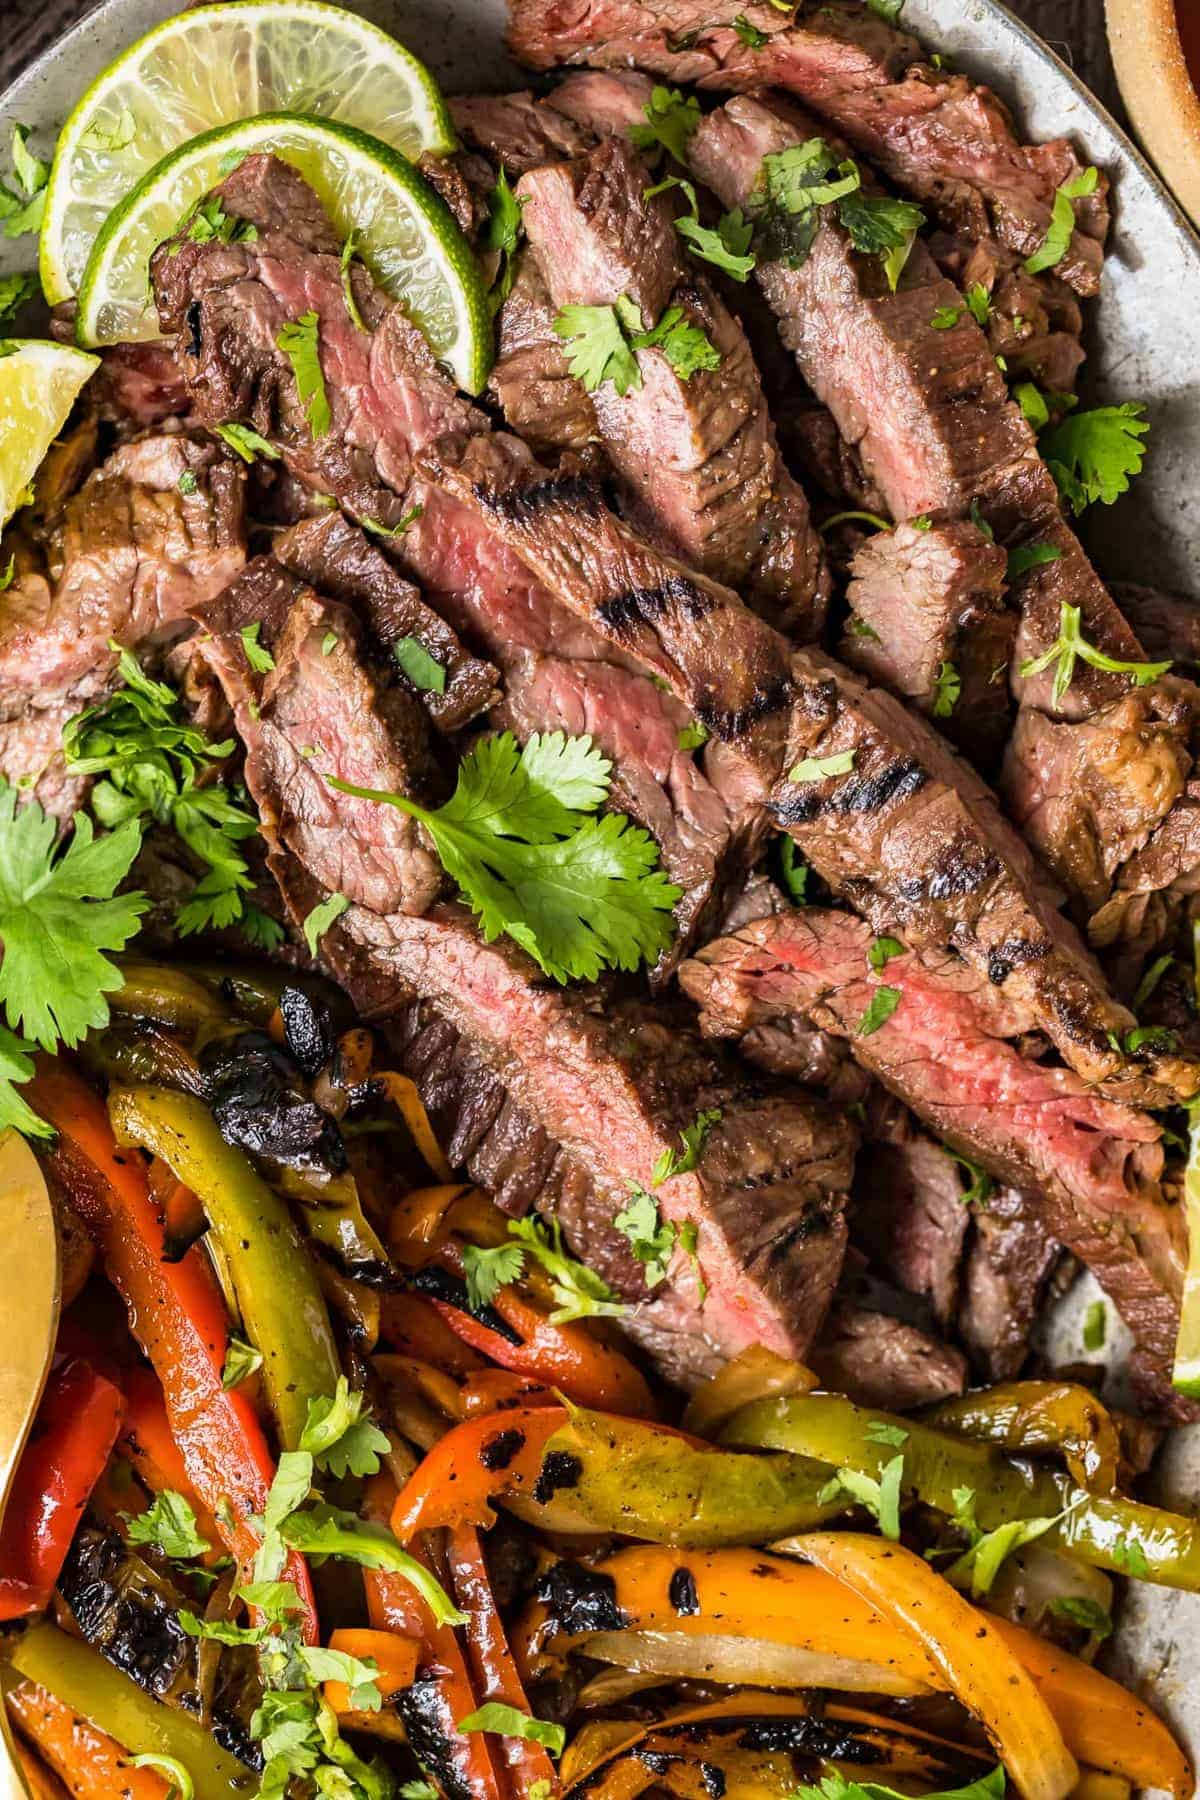 Close up of grilled steak and vegetables on a serving platter